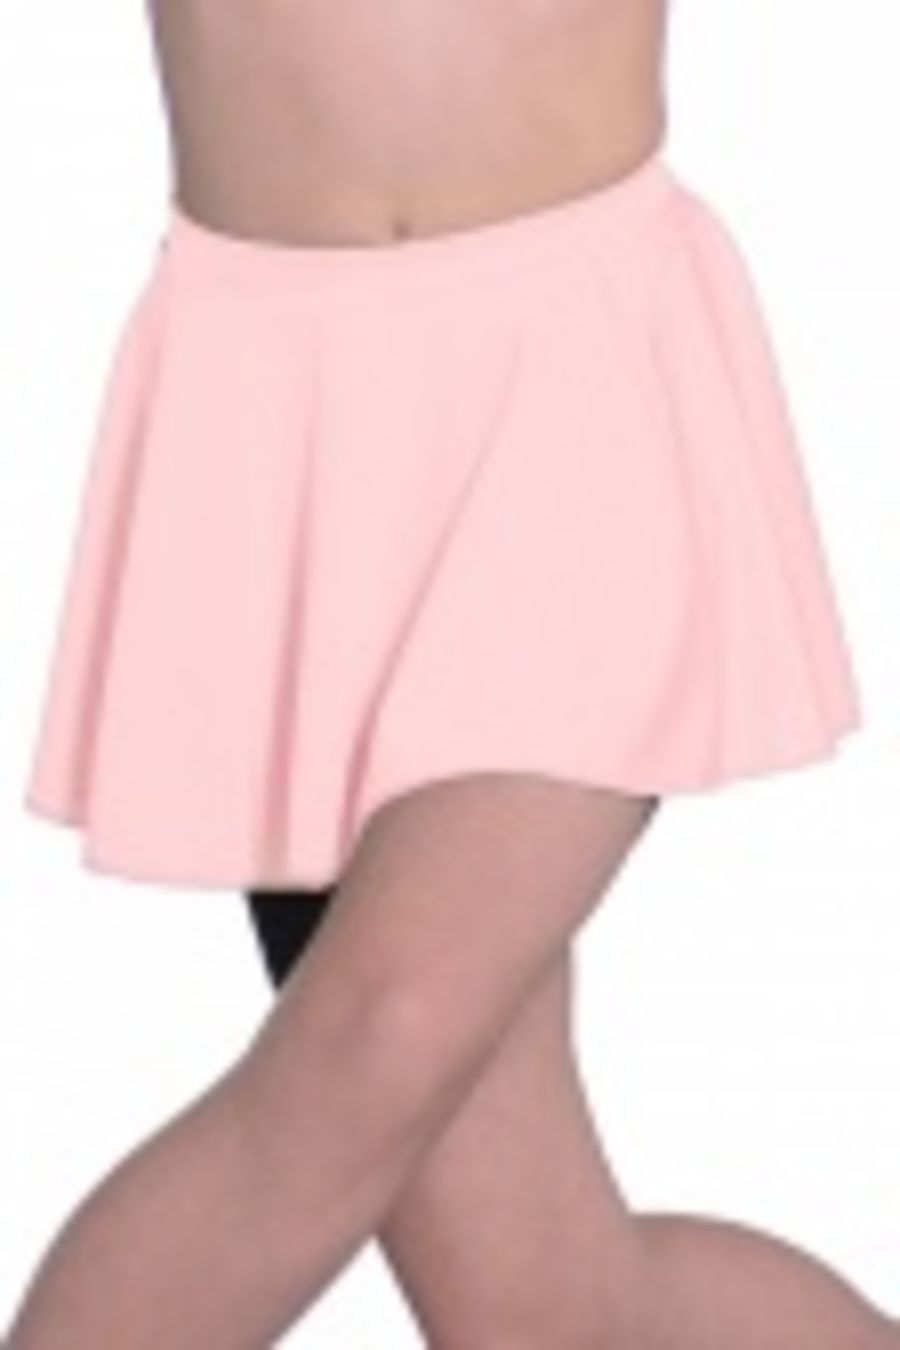 Lycra Circular Skirt in Pink by Roch Valley